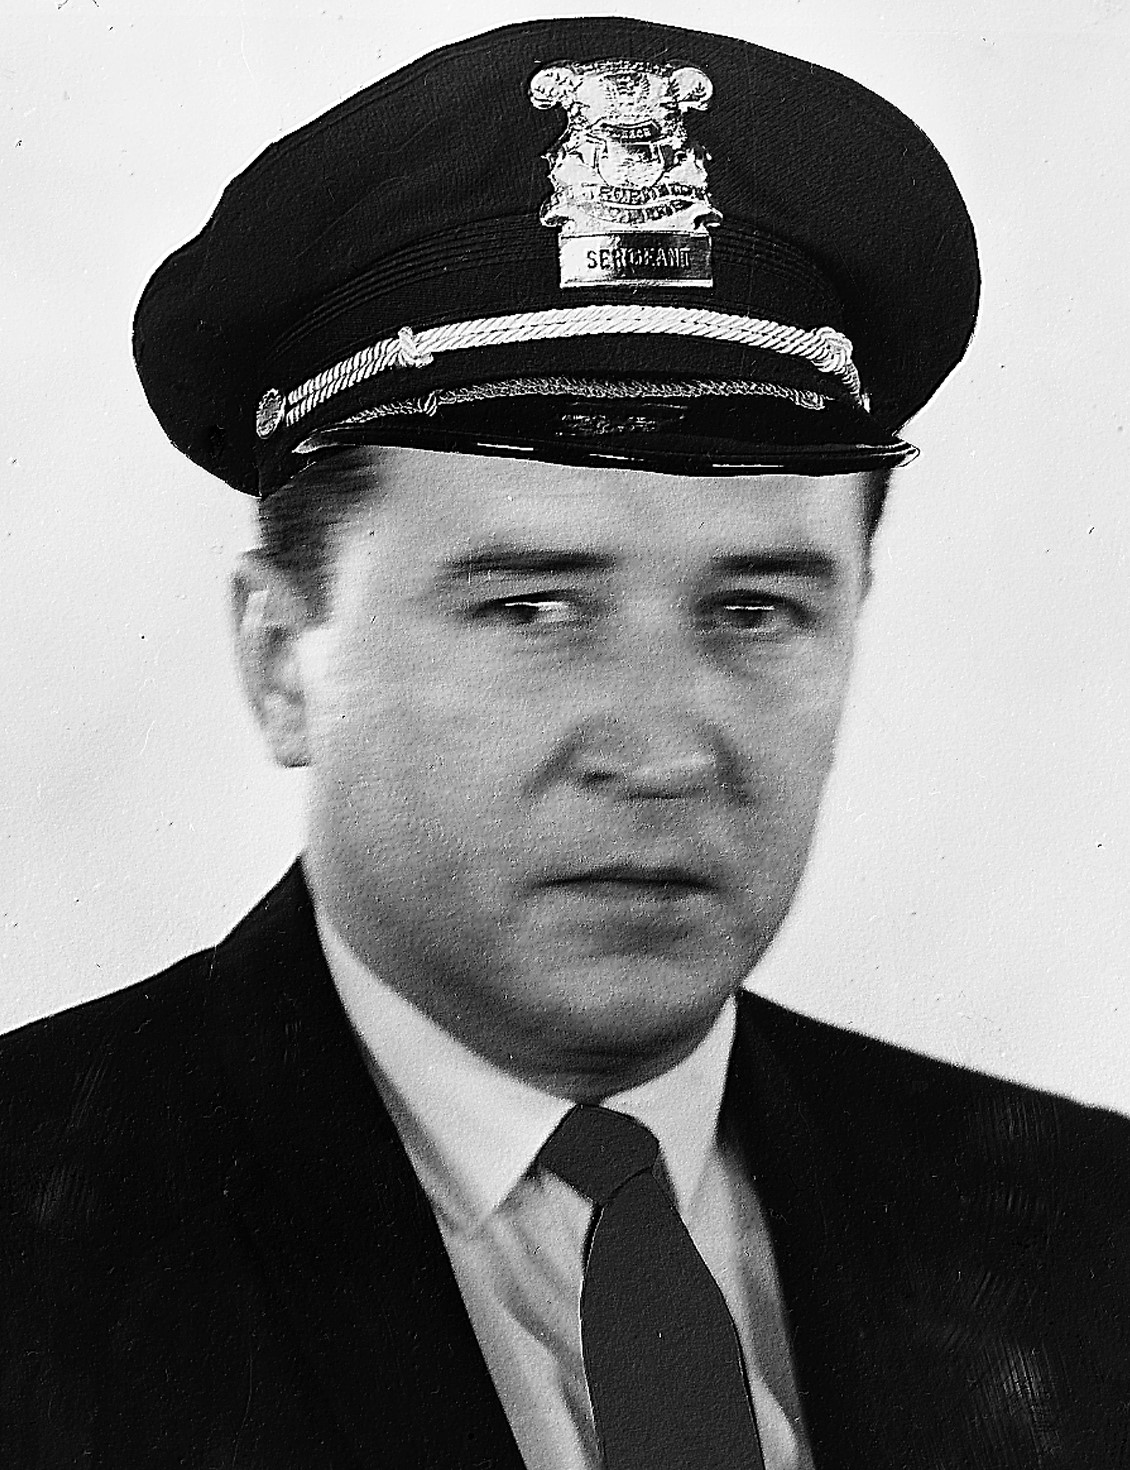 Sergeant Edward Wolski, Jr. | Detroit Police Department, Michigan